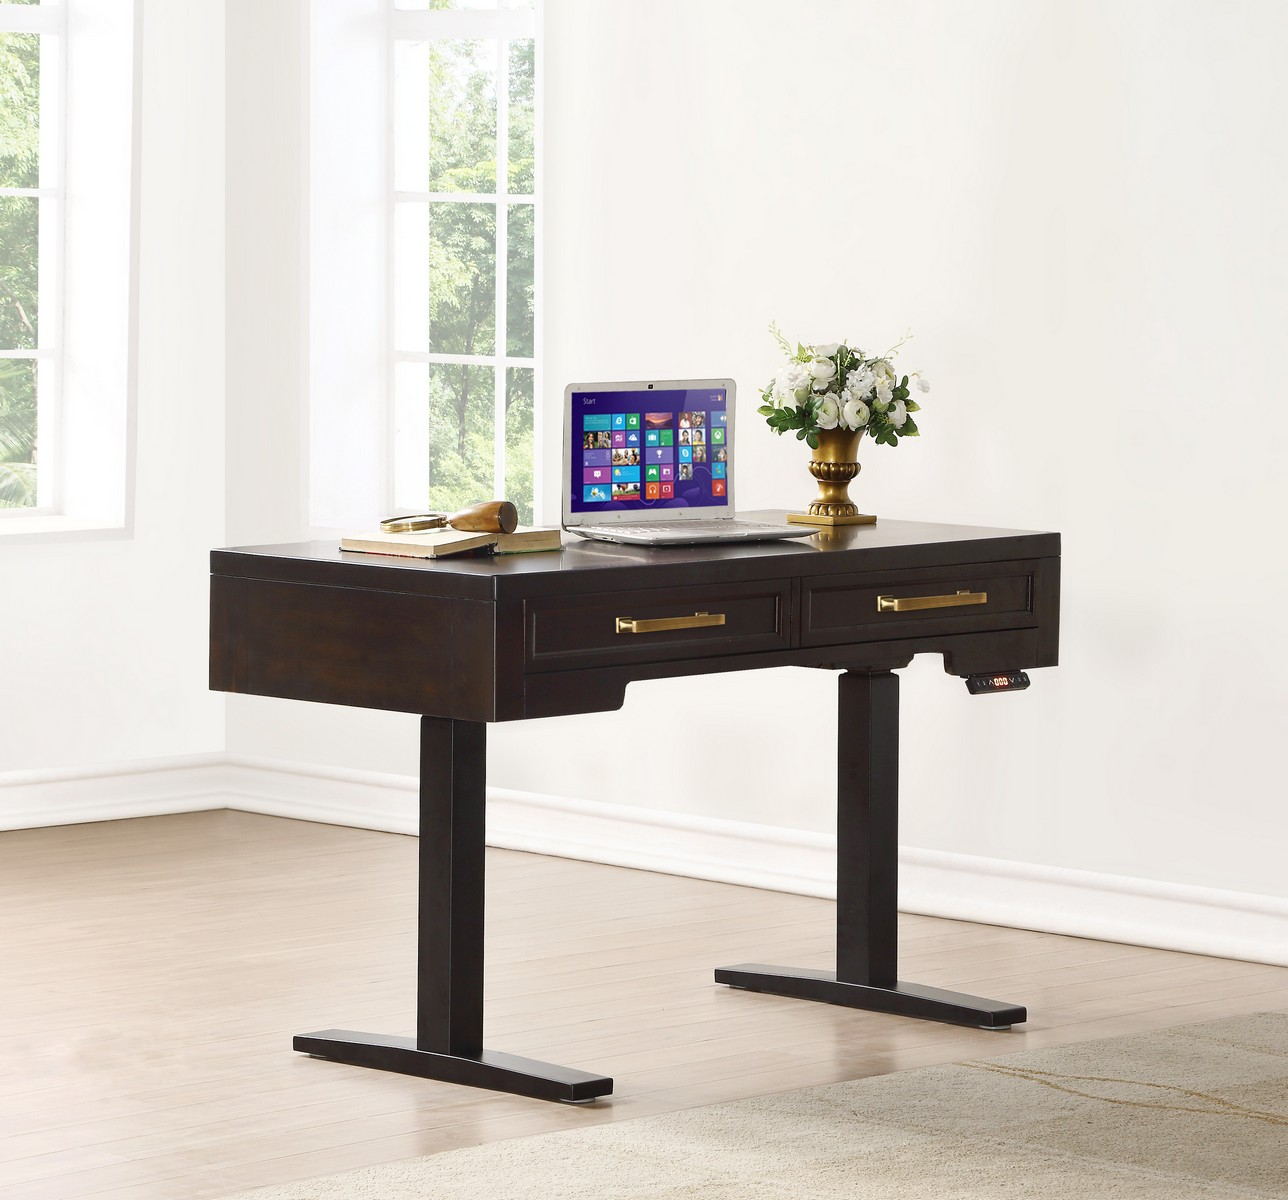 Parker House Greenwich 48-inch Power Lift Desk - Dark Walnut